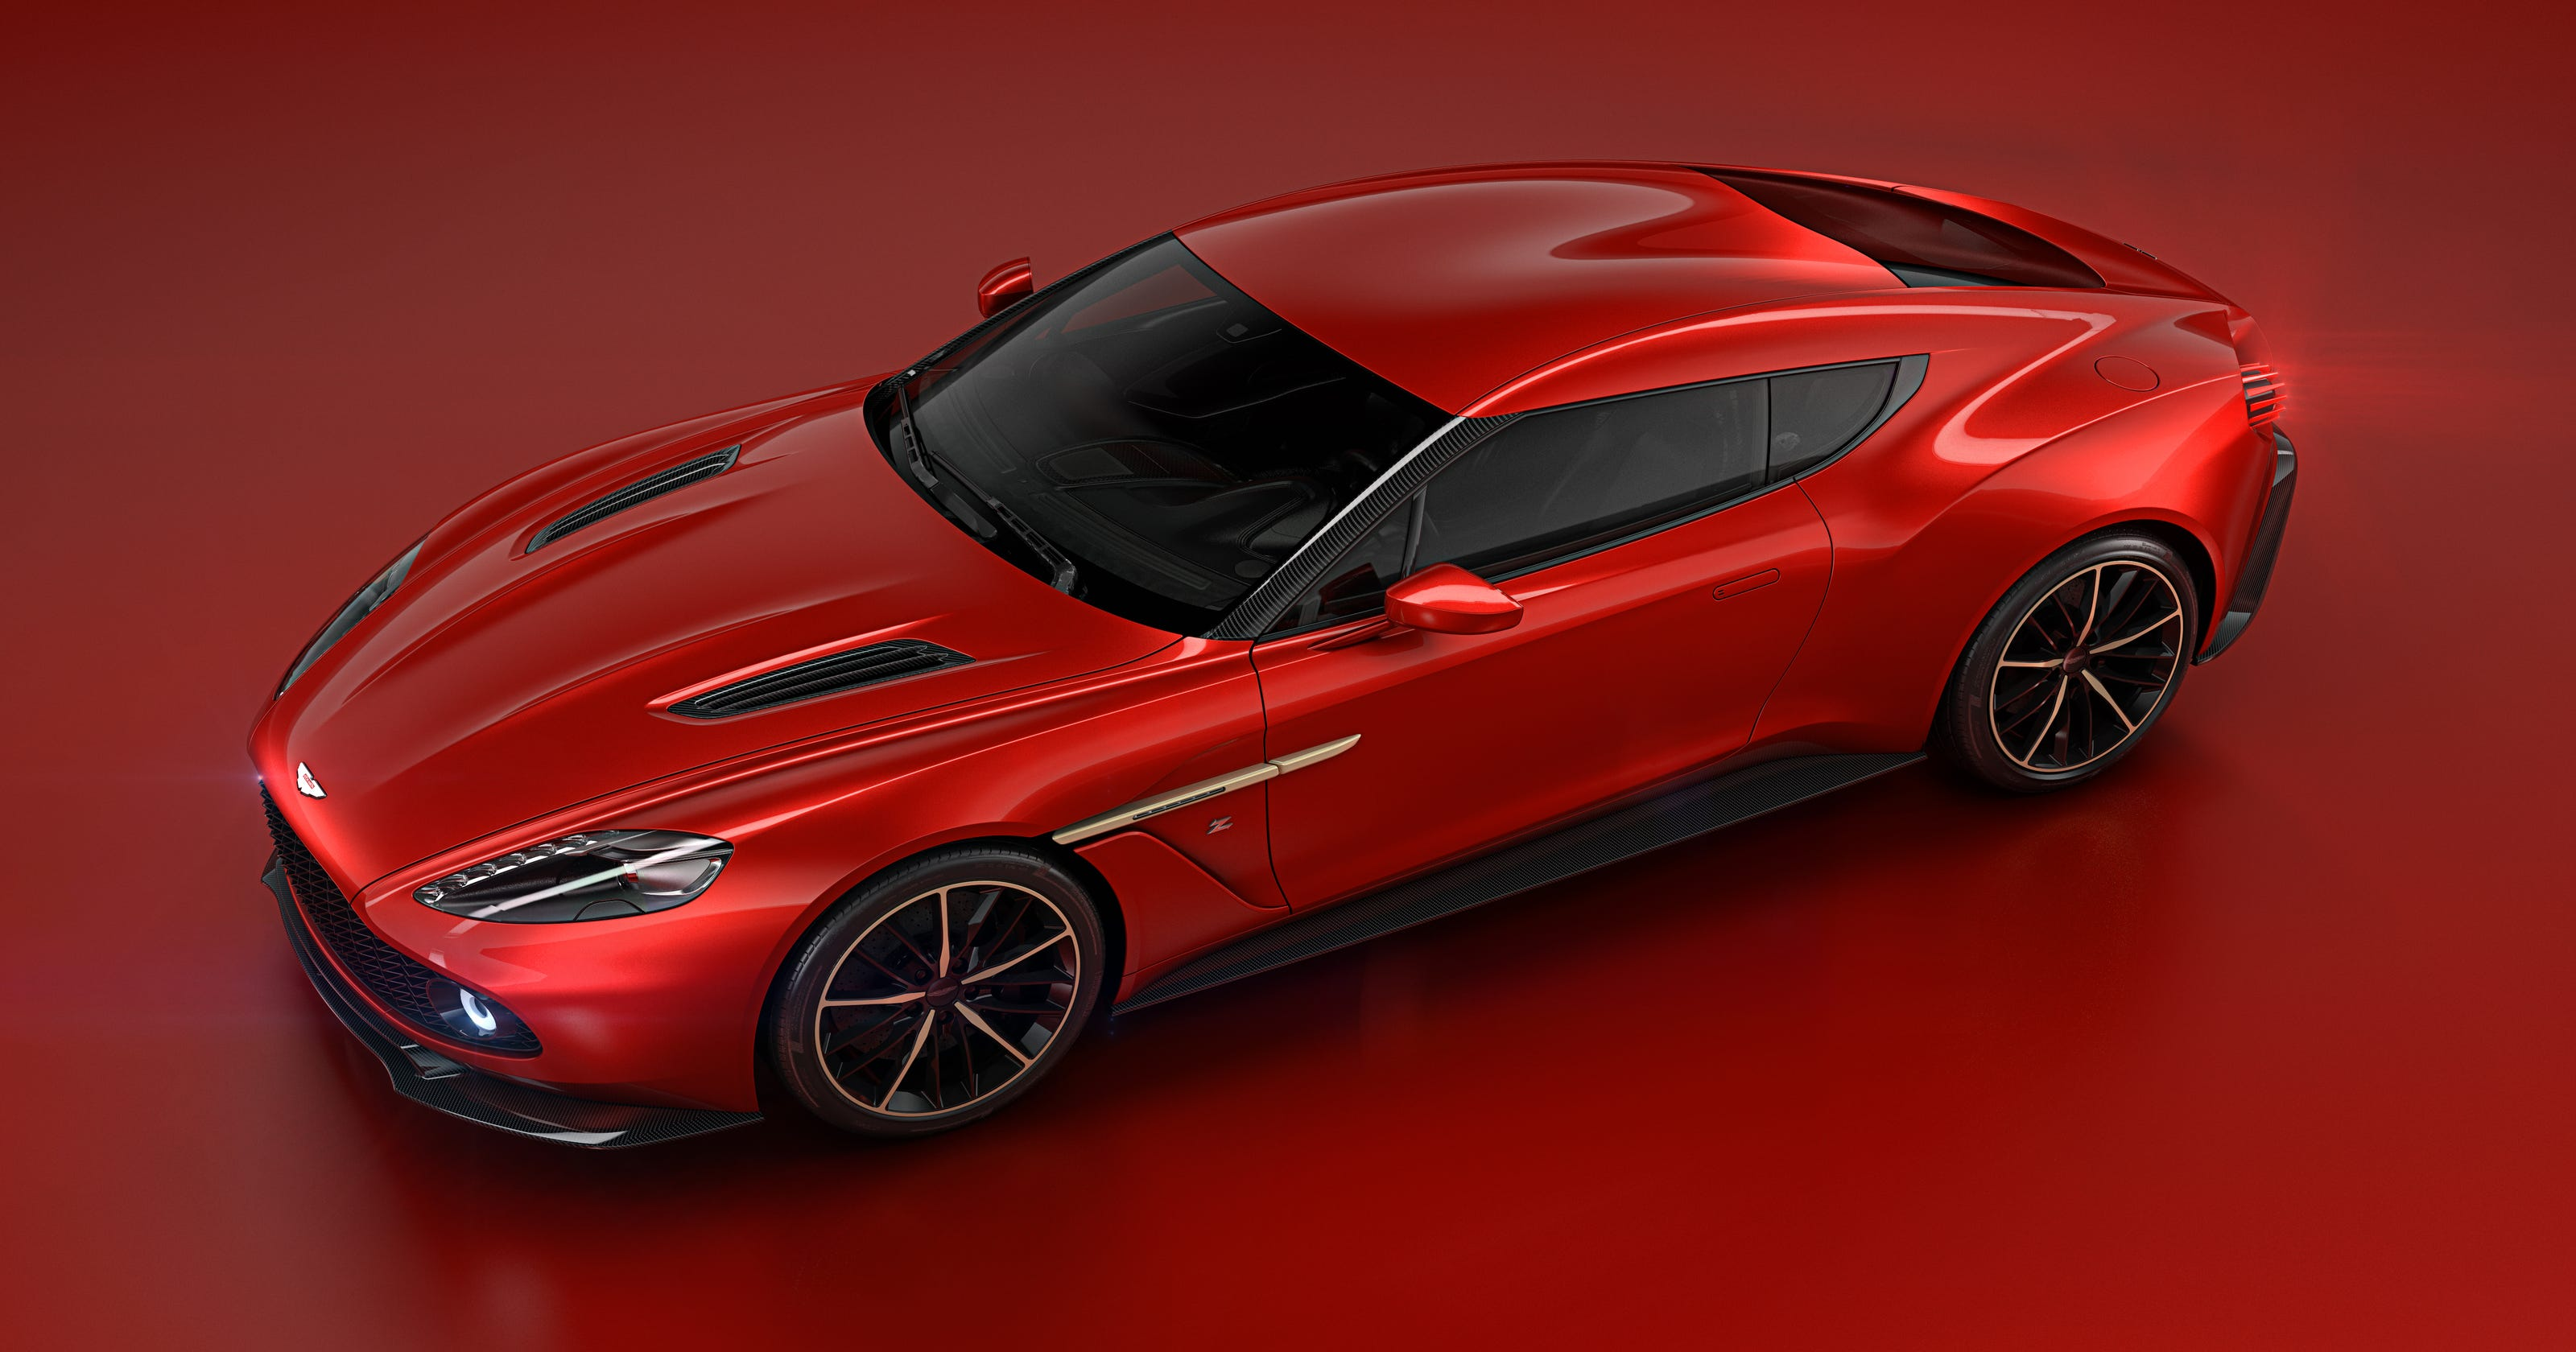 Aston Martin Reveals Zagato Design For New Concept Car - Aston martin concept